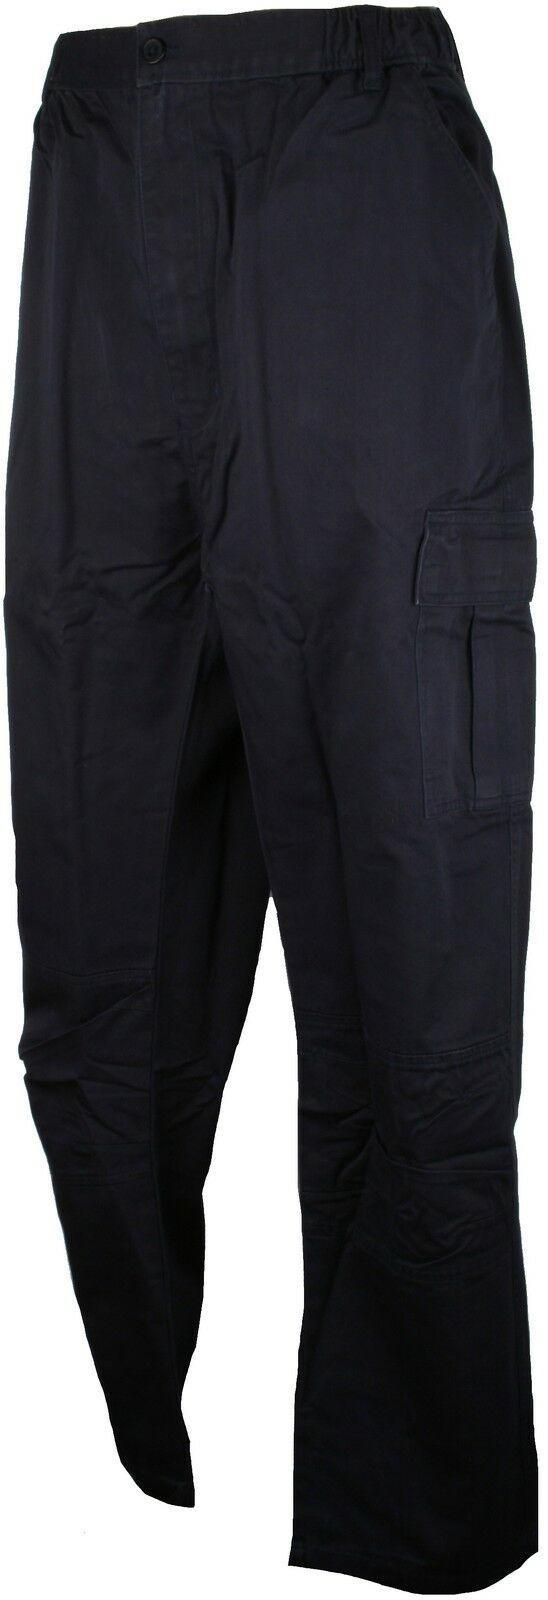 Perfect Collection Cotton Full Length Cargo Trousers 31  Leg Navy bluee